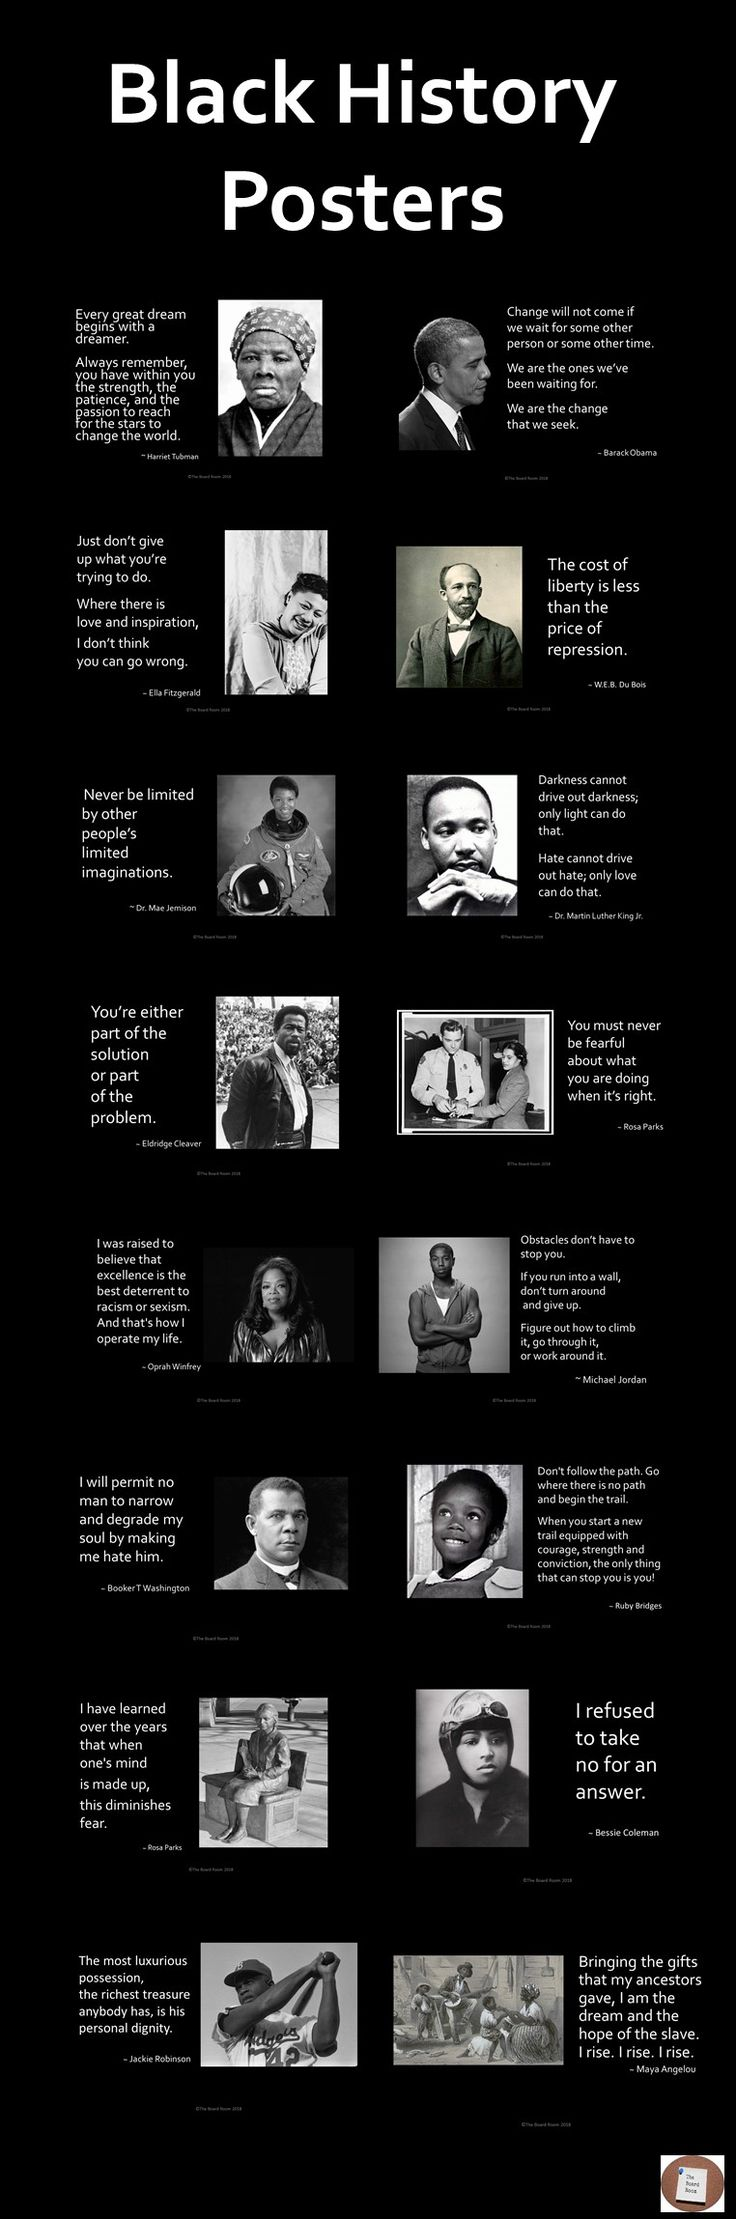 Celebrate Black History Month with 34 inspirational quote posters from influential African American people. This resource is a powerful tool to use in your classrooms, and can stimulate many interesting and inspiring topics and discussions with students about the challenges of people of color through history, including modern day heroes. They will help promote critical thinking, diversity awareness, personal reflection and character education.